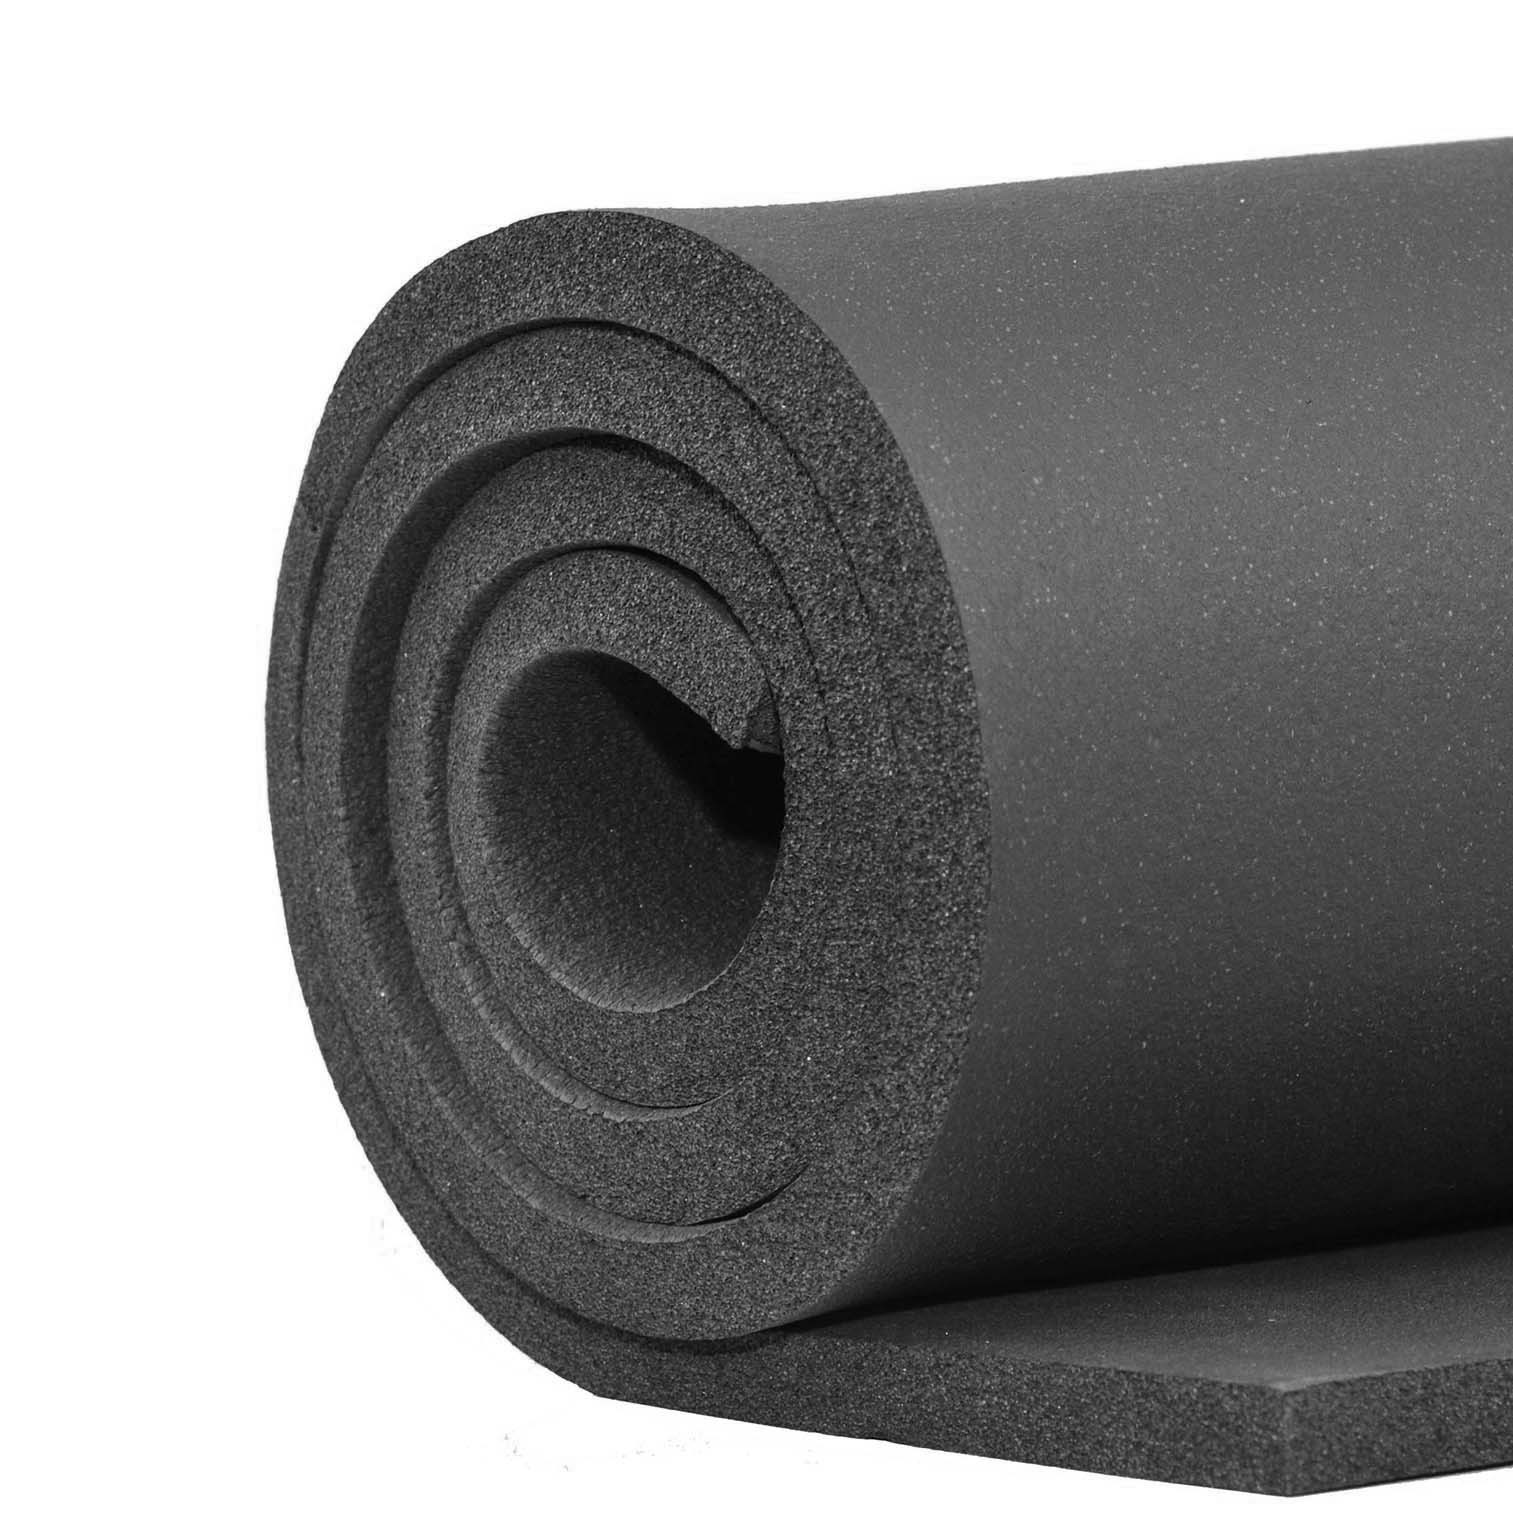 Armaflex Closed-Cell Foam Pipe Insulation and Sheets